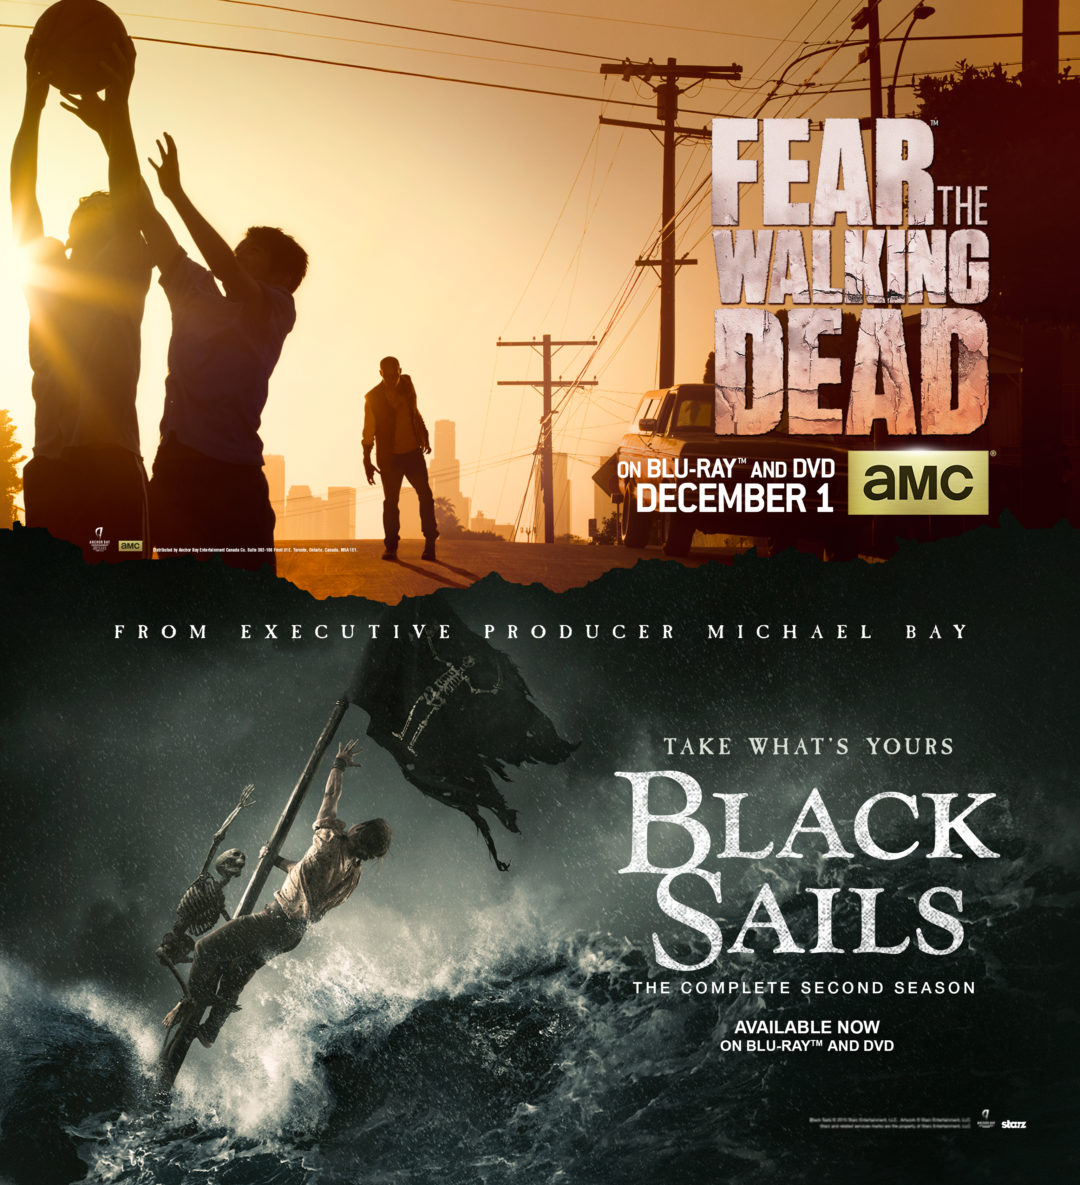 Black Sails/Fear the Walking Dead Ad